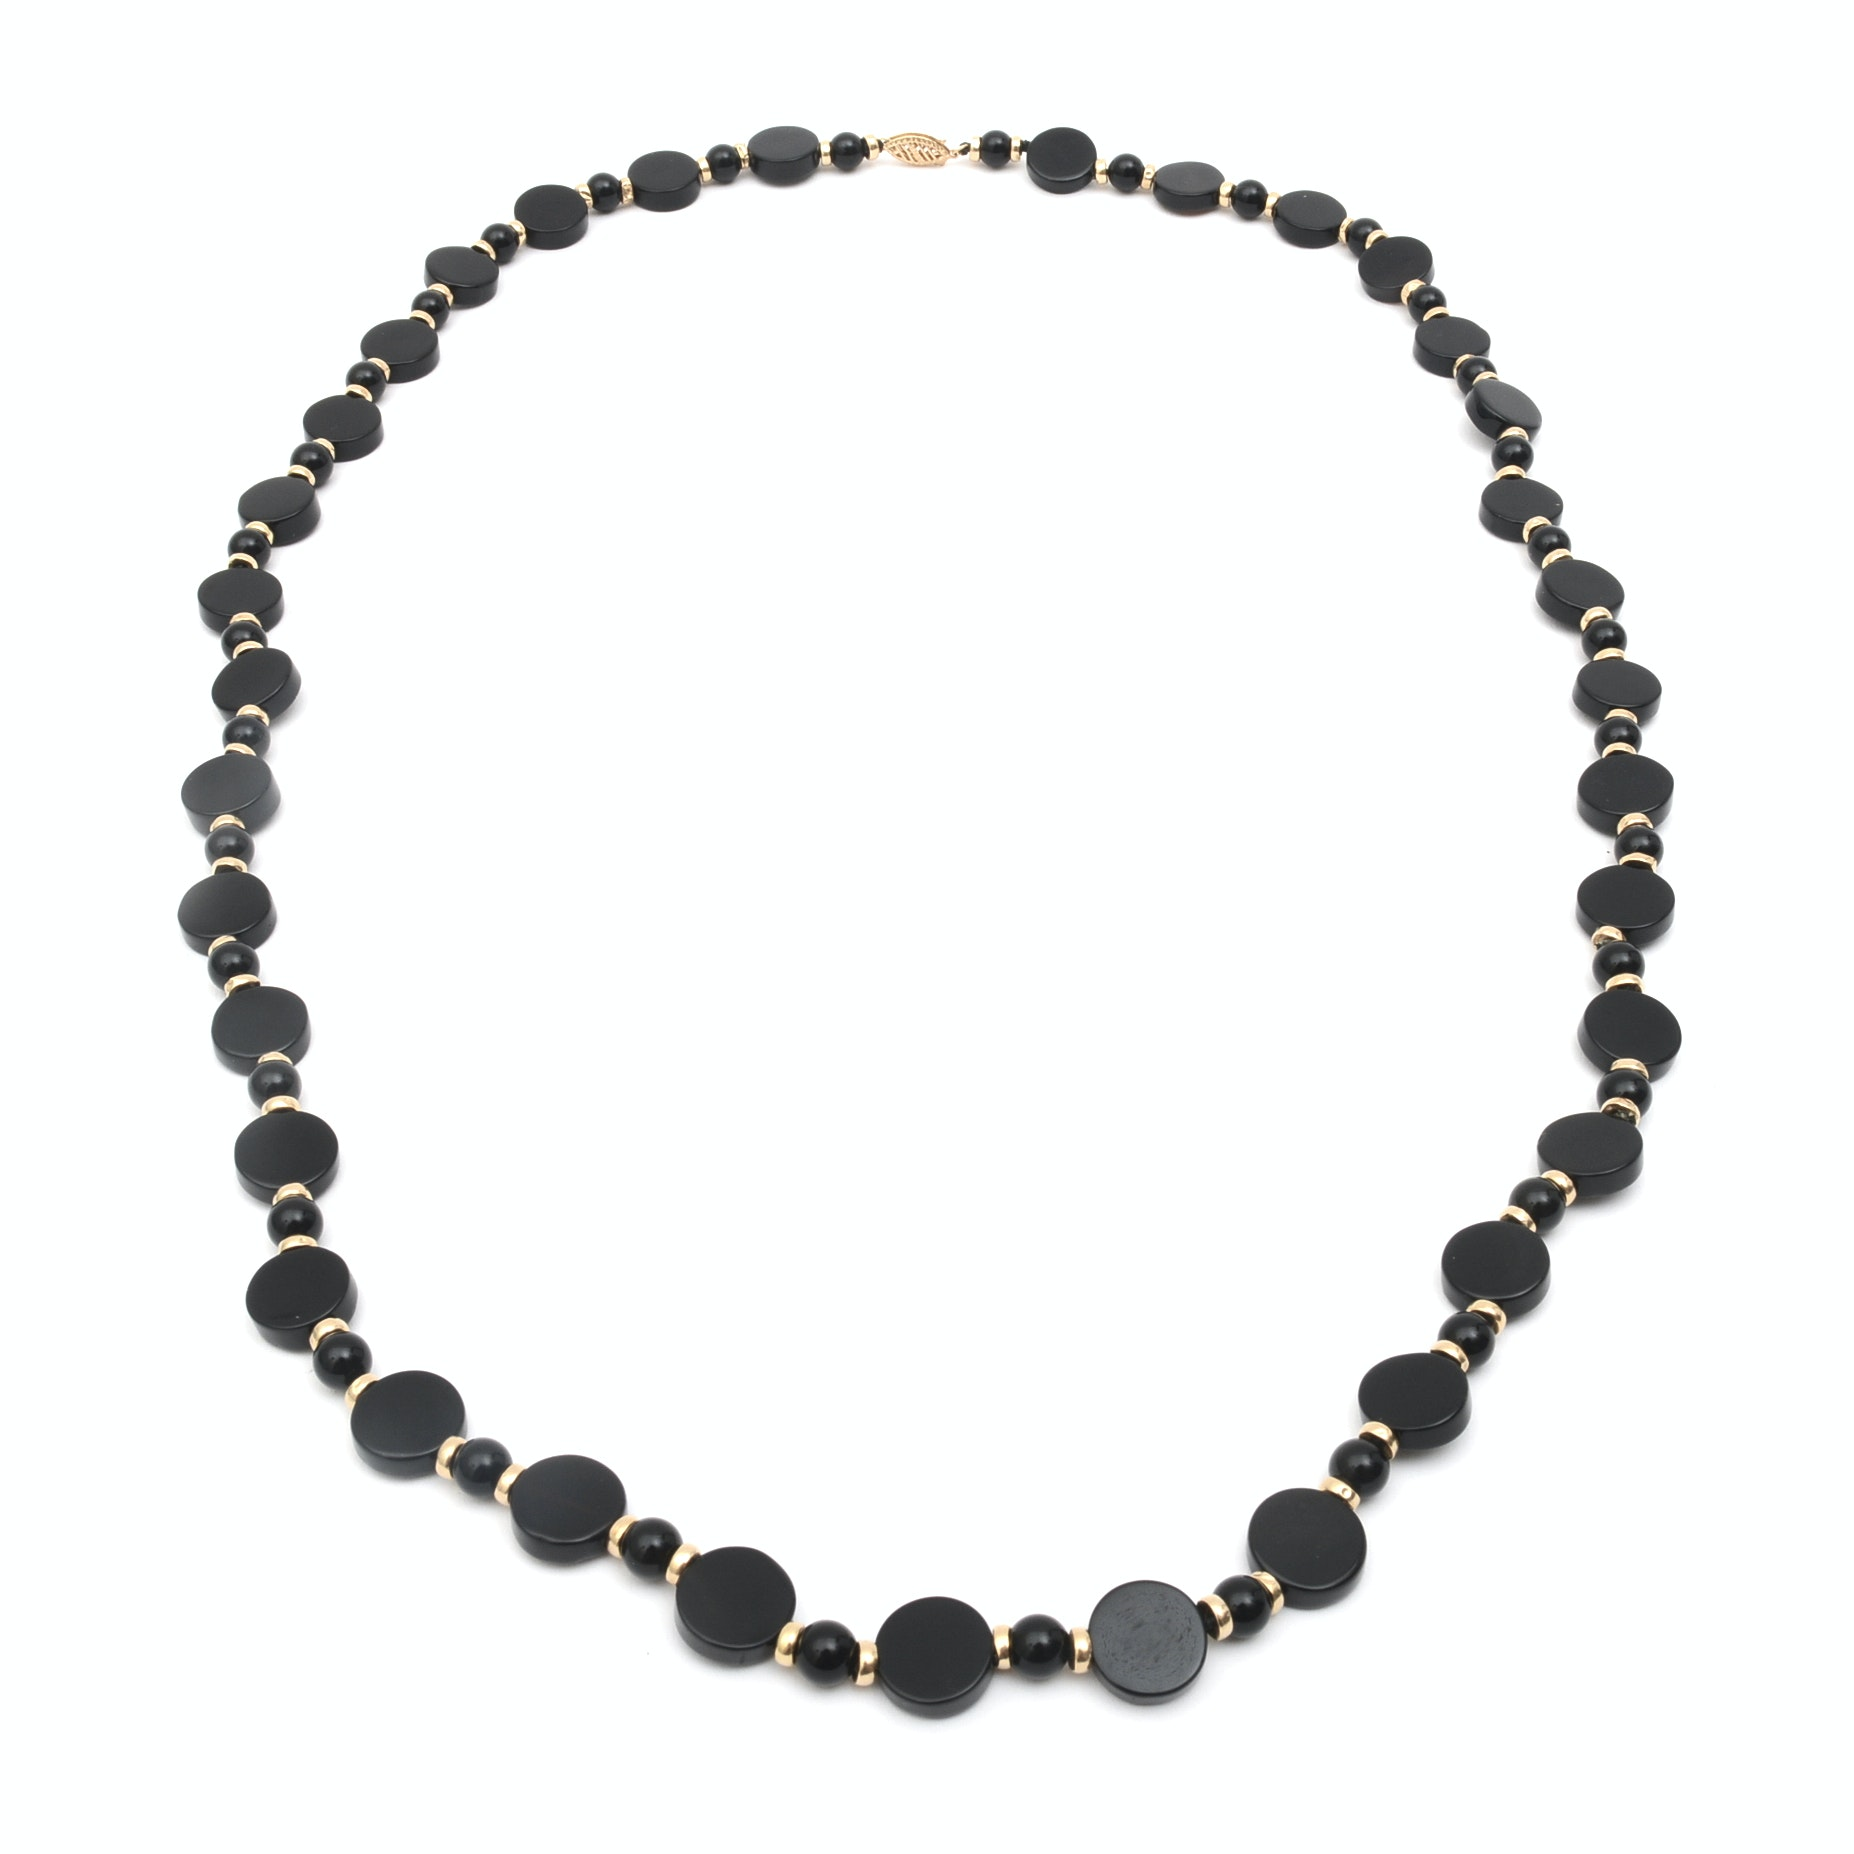 14K Yellow Gold and Graduated Onyx Disc Necklace